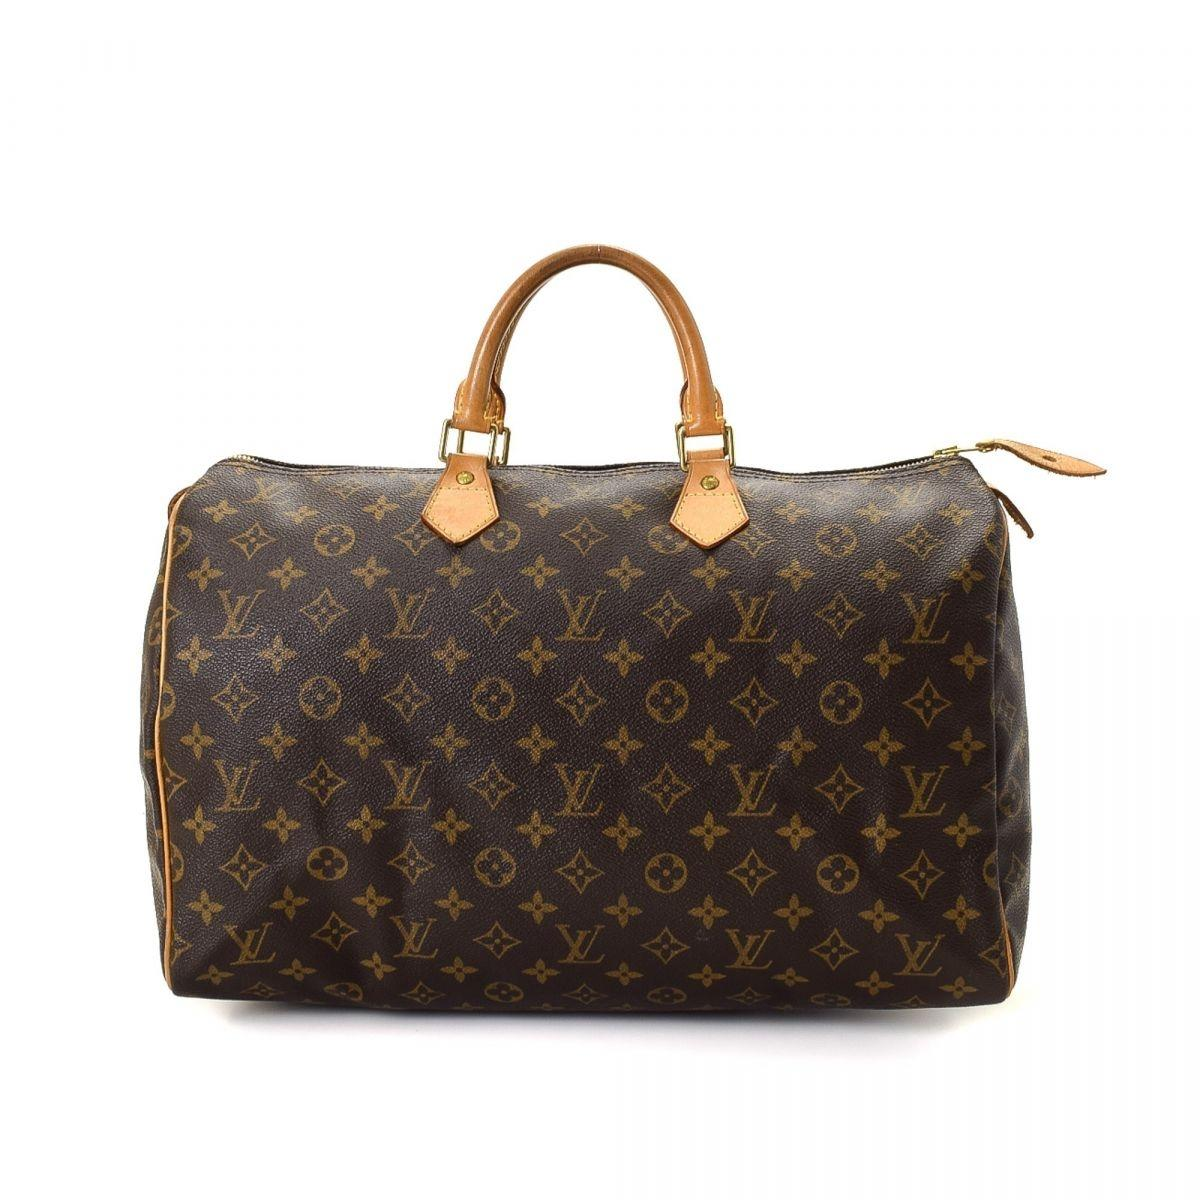 louis vuitton bags outlet. louis vuitton speedy 40 keepall 45 large big damier satchel in brown bags outlet a